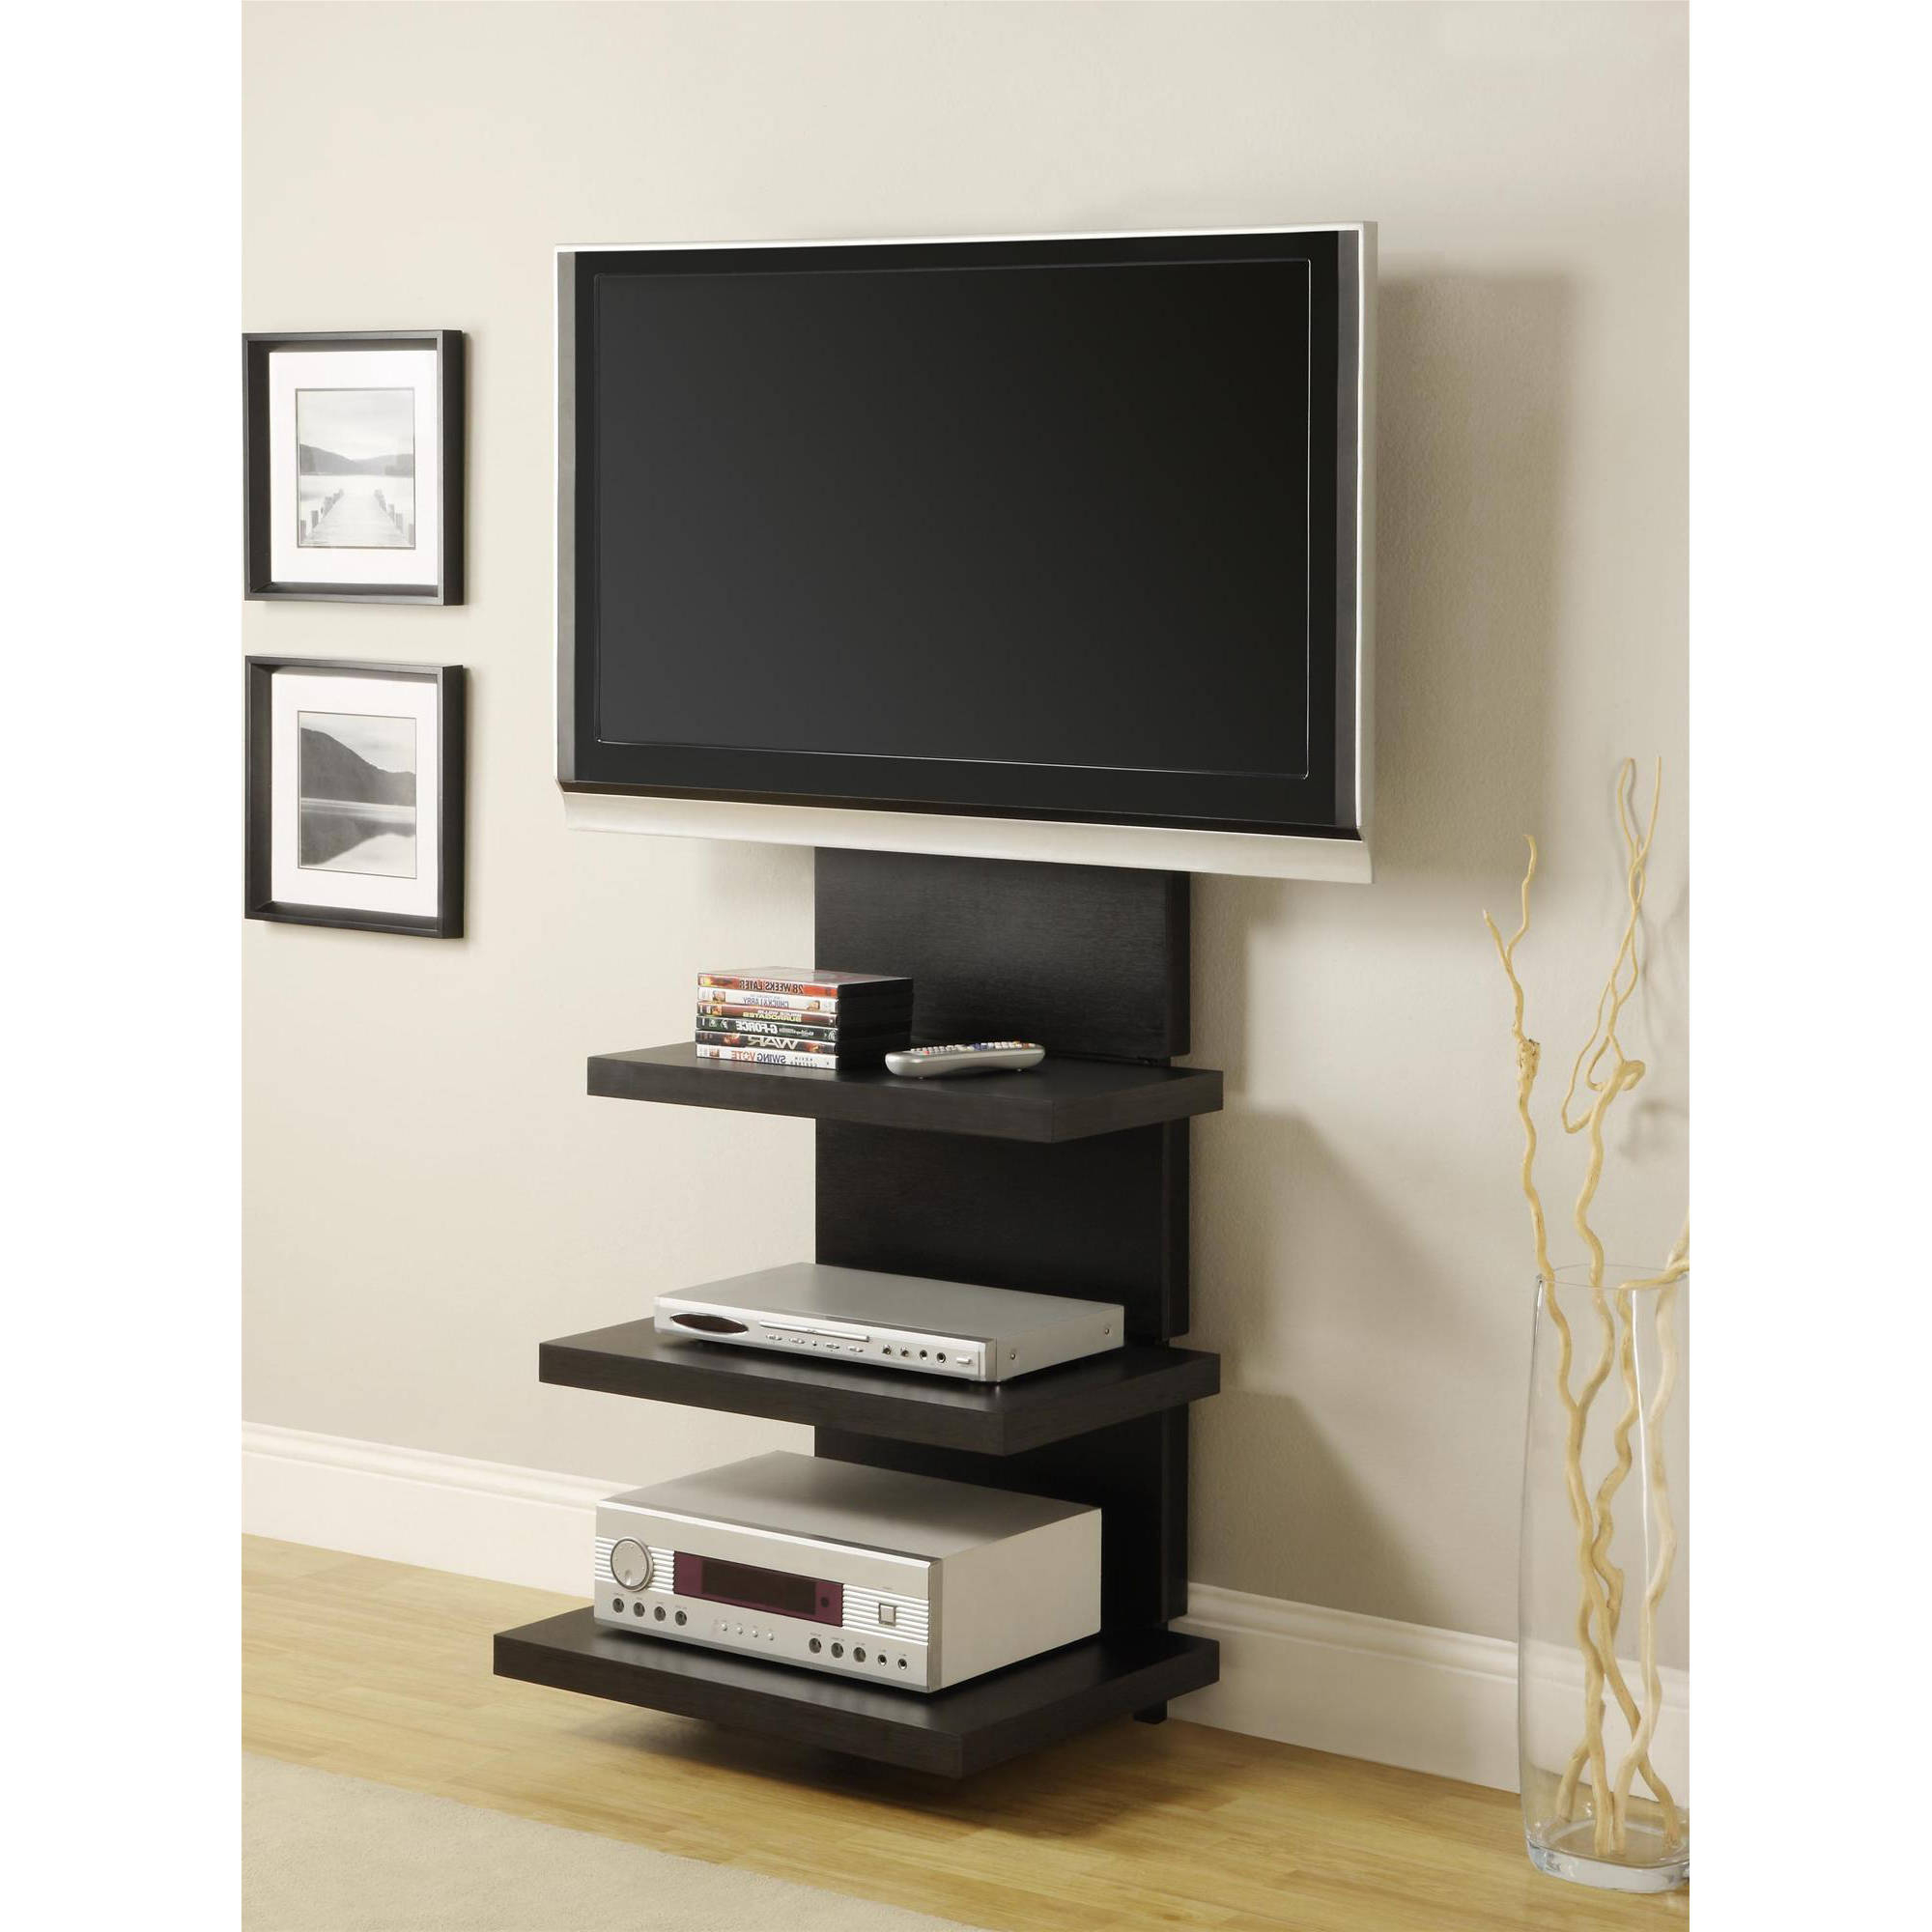 "Famous Shelves For Tvs On The Wall In Altra Wall Mount Tv Stand With 3 Shelves, For Tvs Up To 60"" (View 5 of 20)"